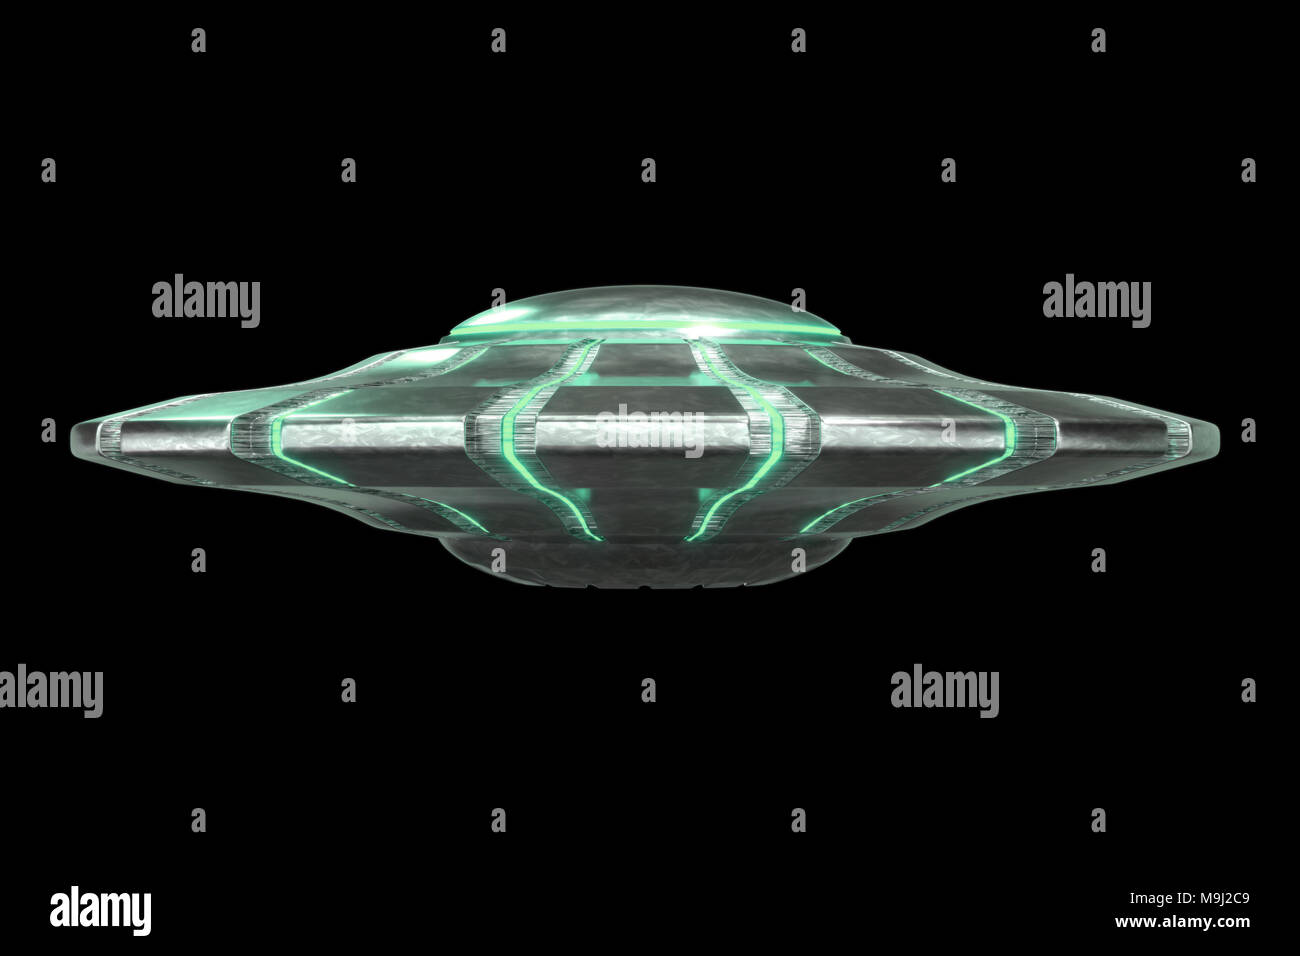 Ufo Mysterious Green Alien Spaceship Extraterrestrial Visitors With Flying Saucer 3d Science Fiction Space Render Isolated On Black Background Stock Photo Alamy